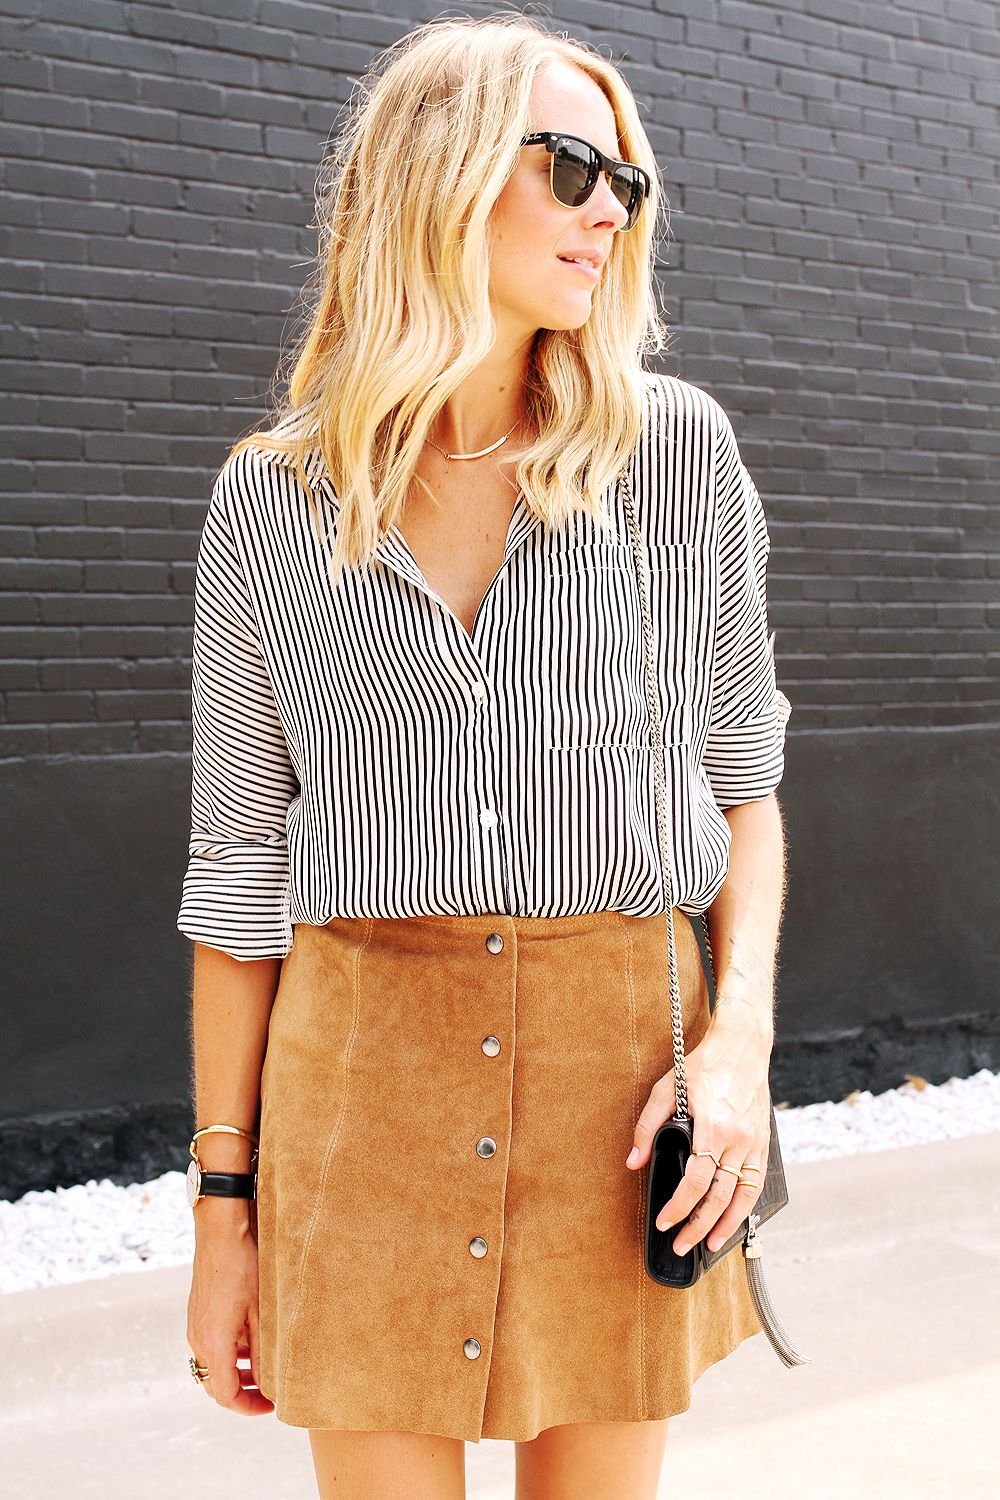 Stripe shirt and button front suede skirt